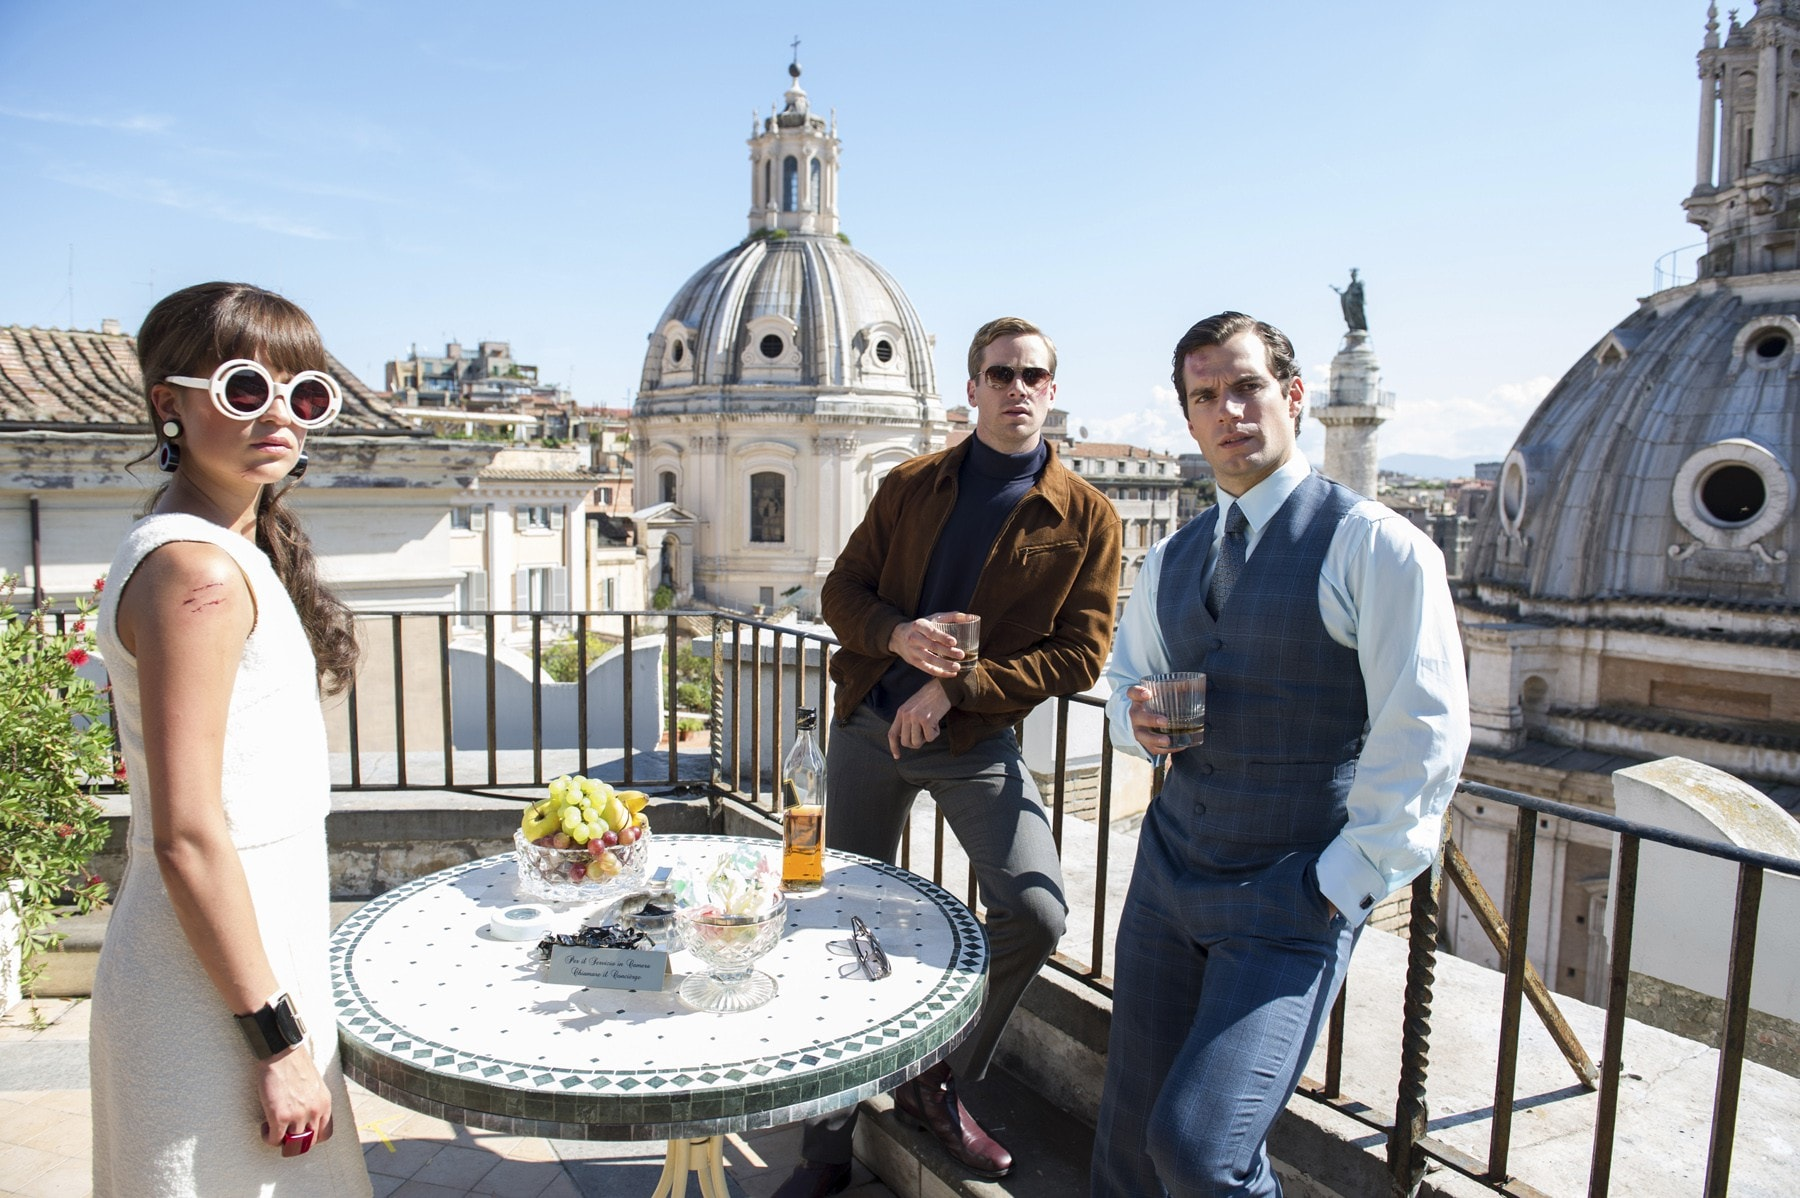 The Man from U.N.C.L.E. Wallpapers hd